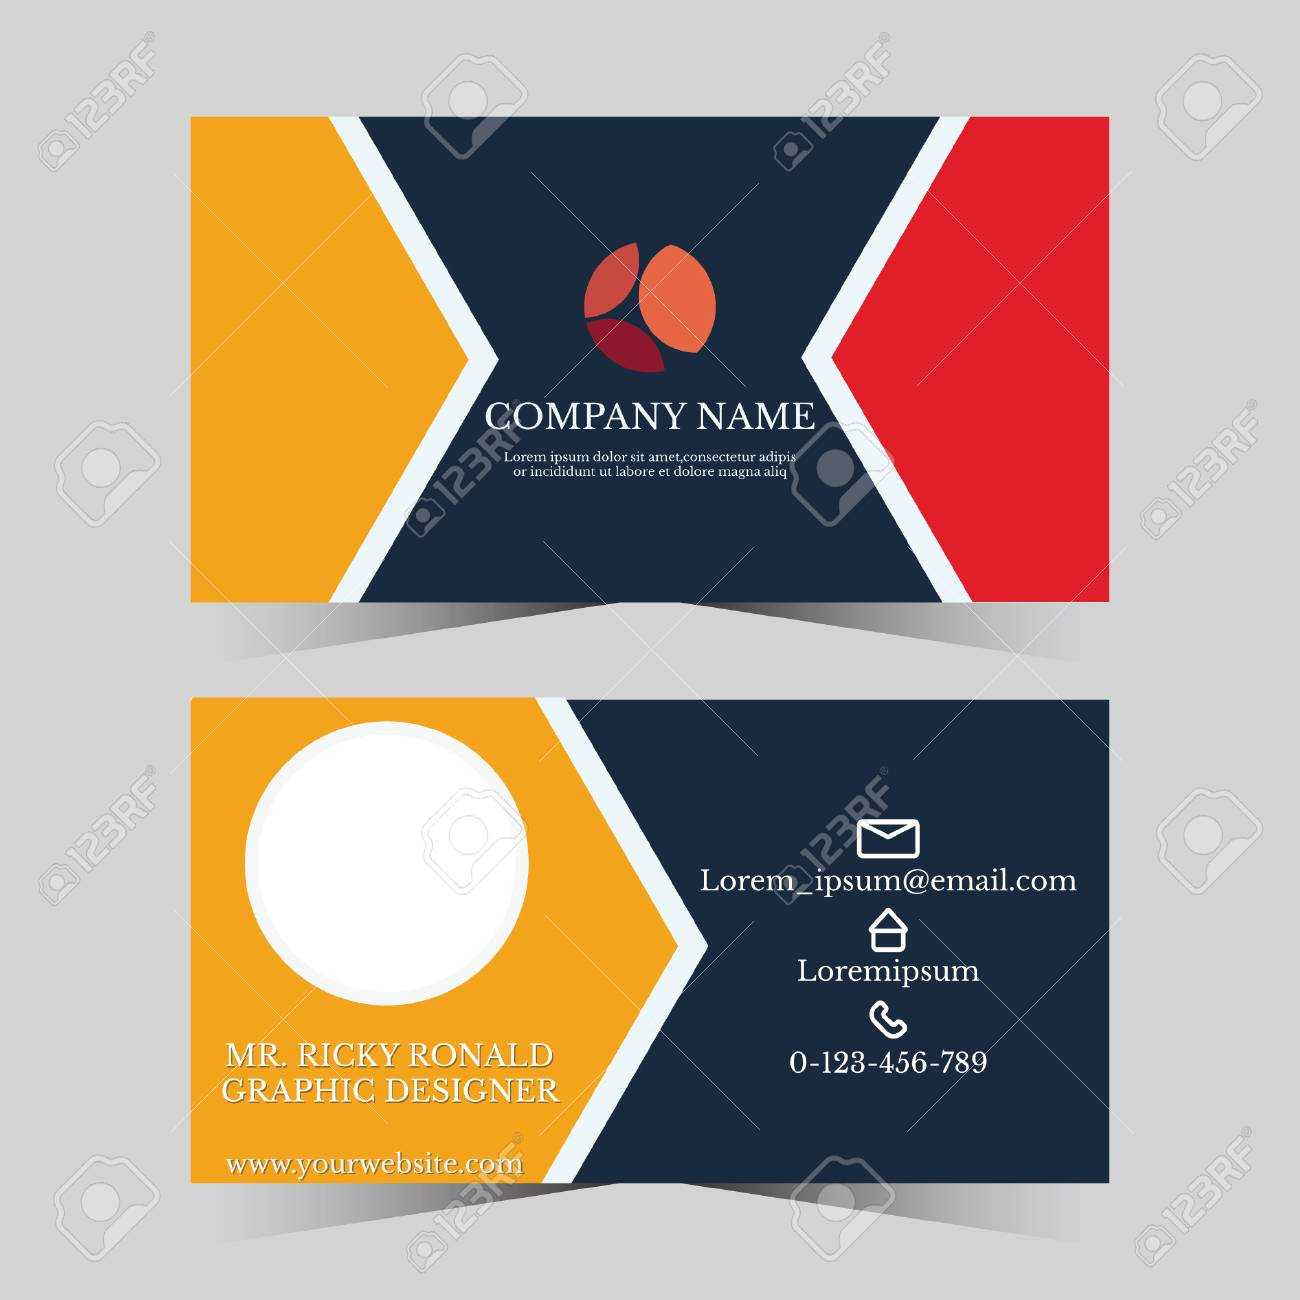 Calling Card Template For Business Man With Geometric Design Regarding Template For Calling Card